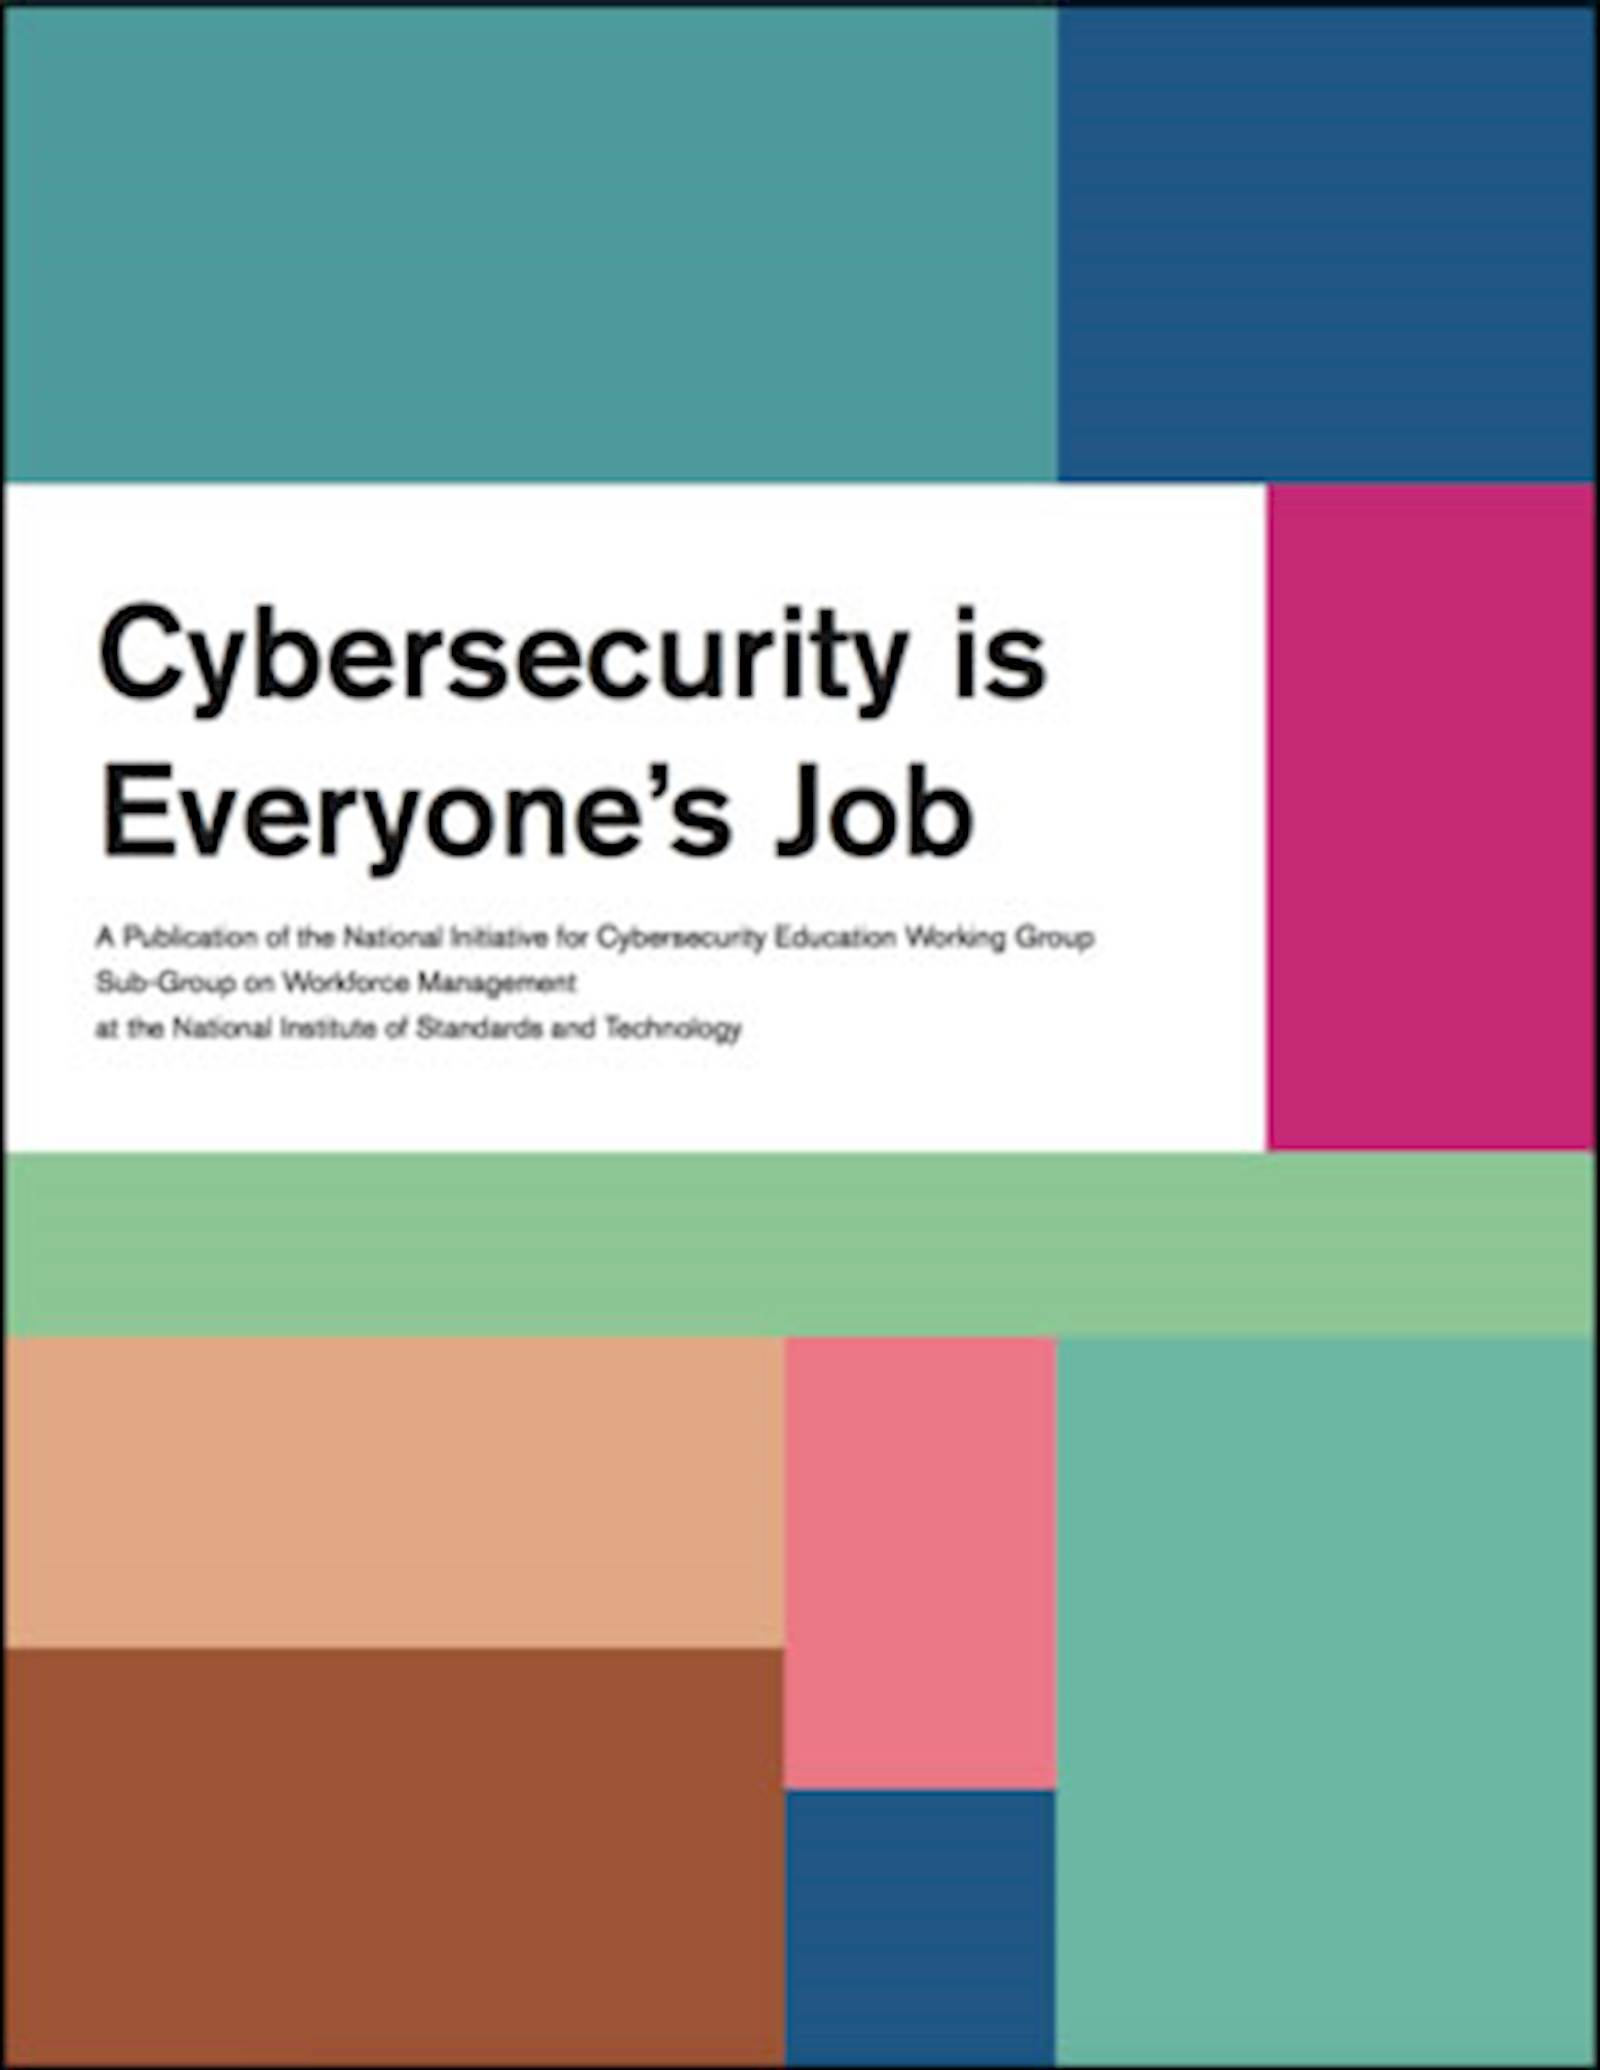 Download Cybersecurity is Everyones job guidebook